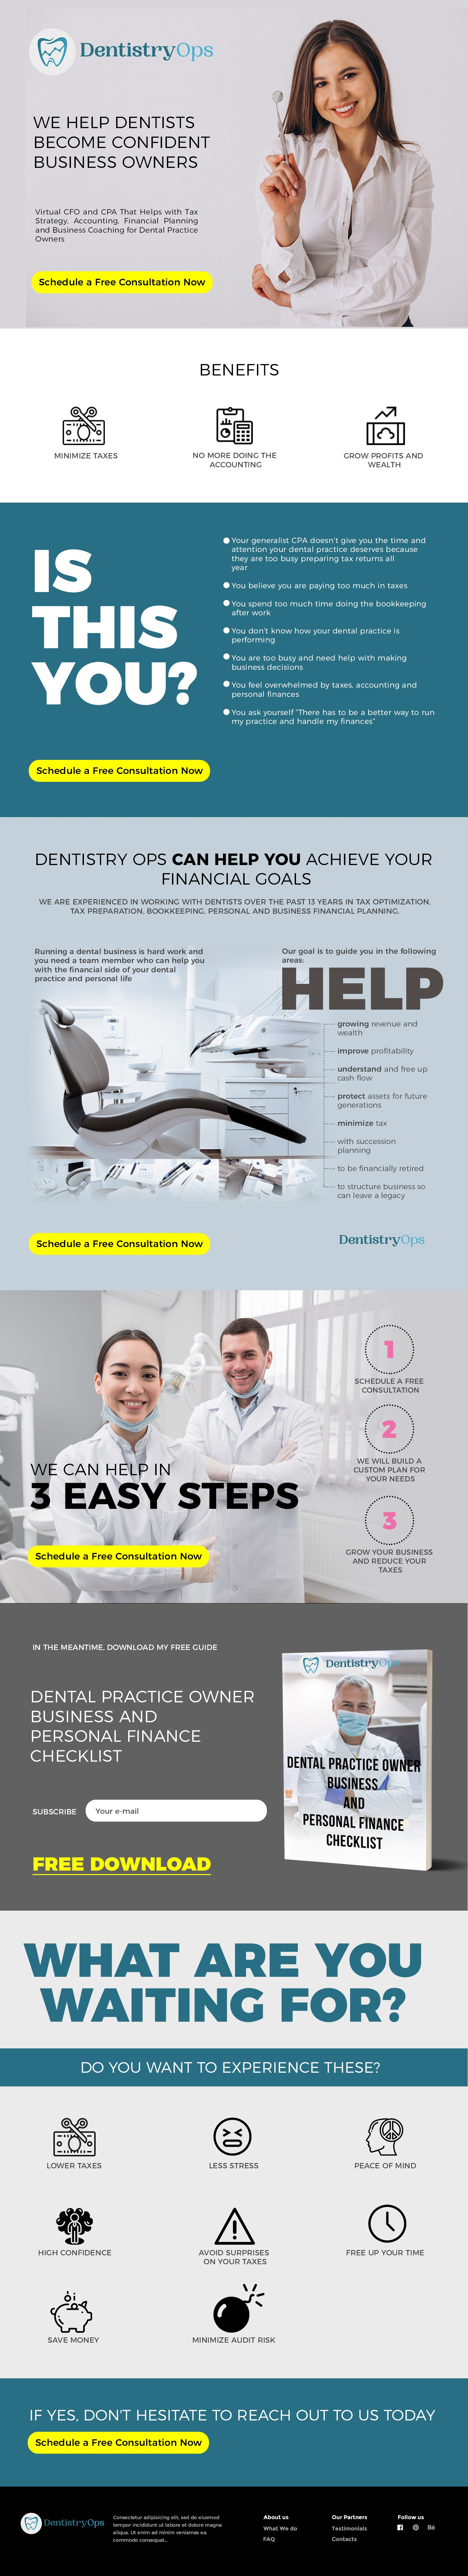 Dental CPA/Accounting Business Needs a Powerful Website